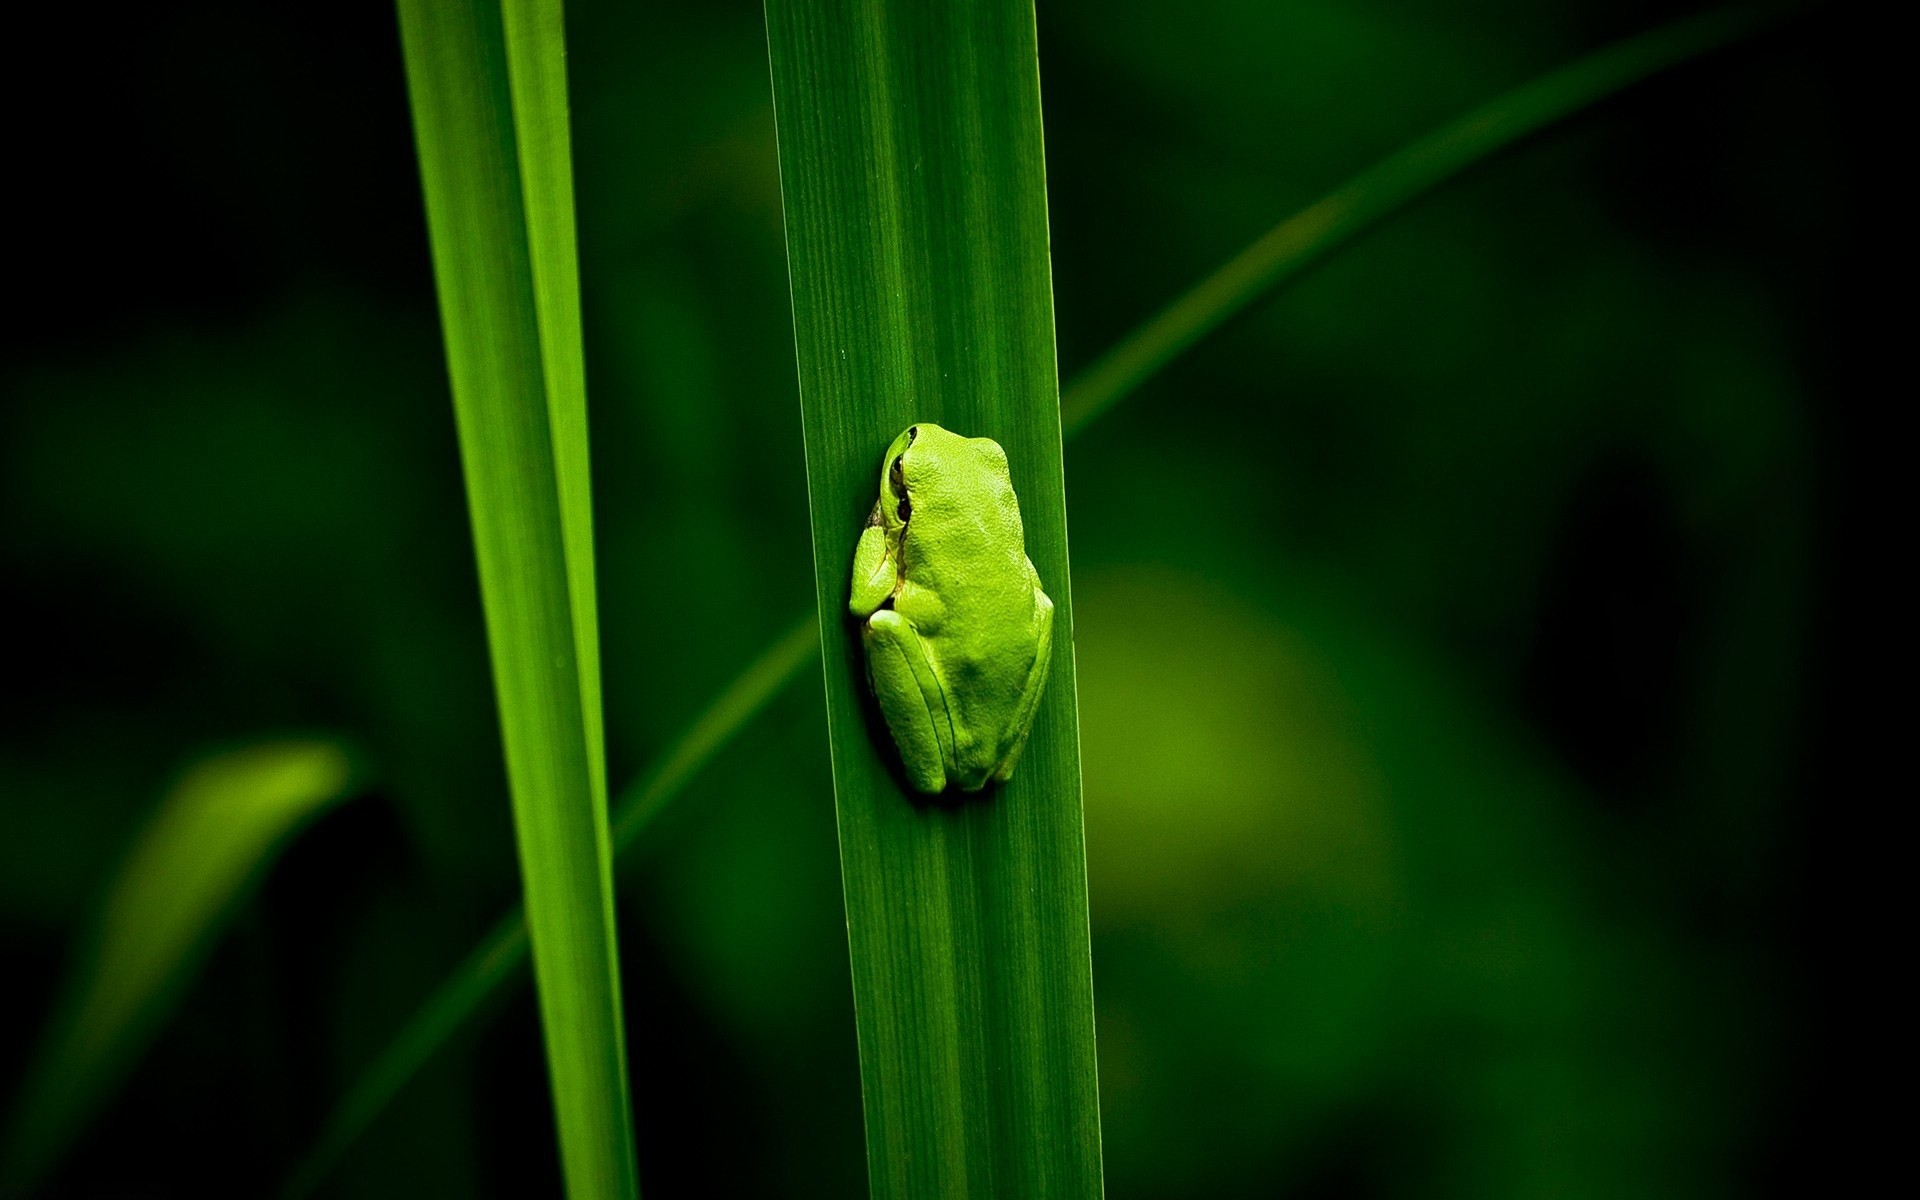 Frogs images Frog Wallpaper! HD wallpaper and background photos 1280×800  Frog Wallpaper (